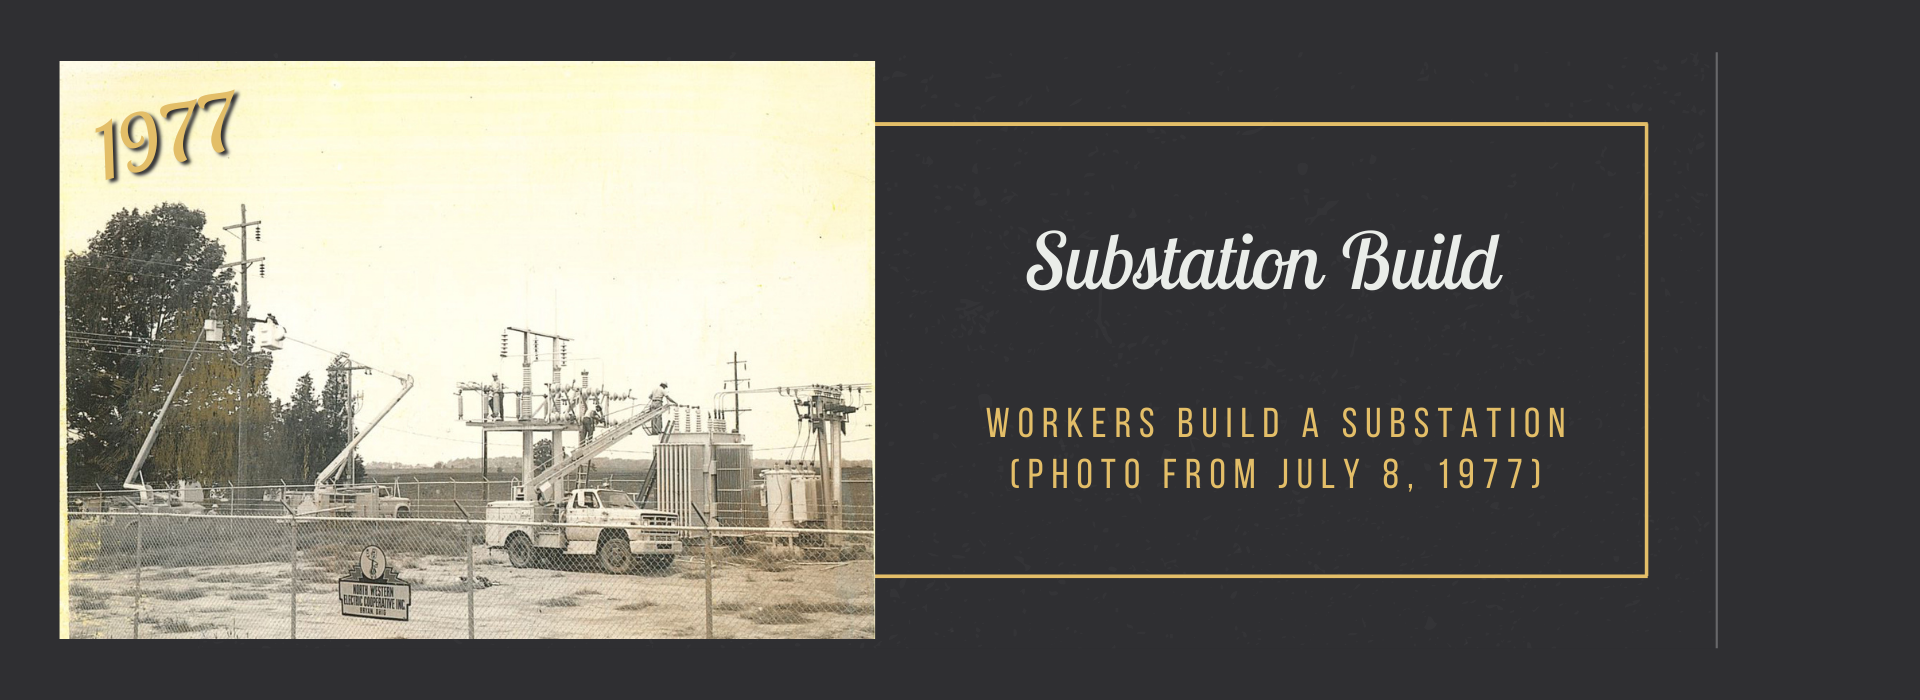 Workers build a substation (photo from July 8, 1977)